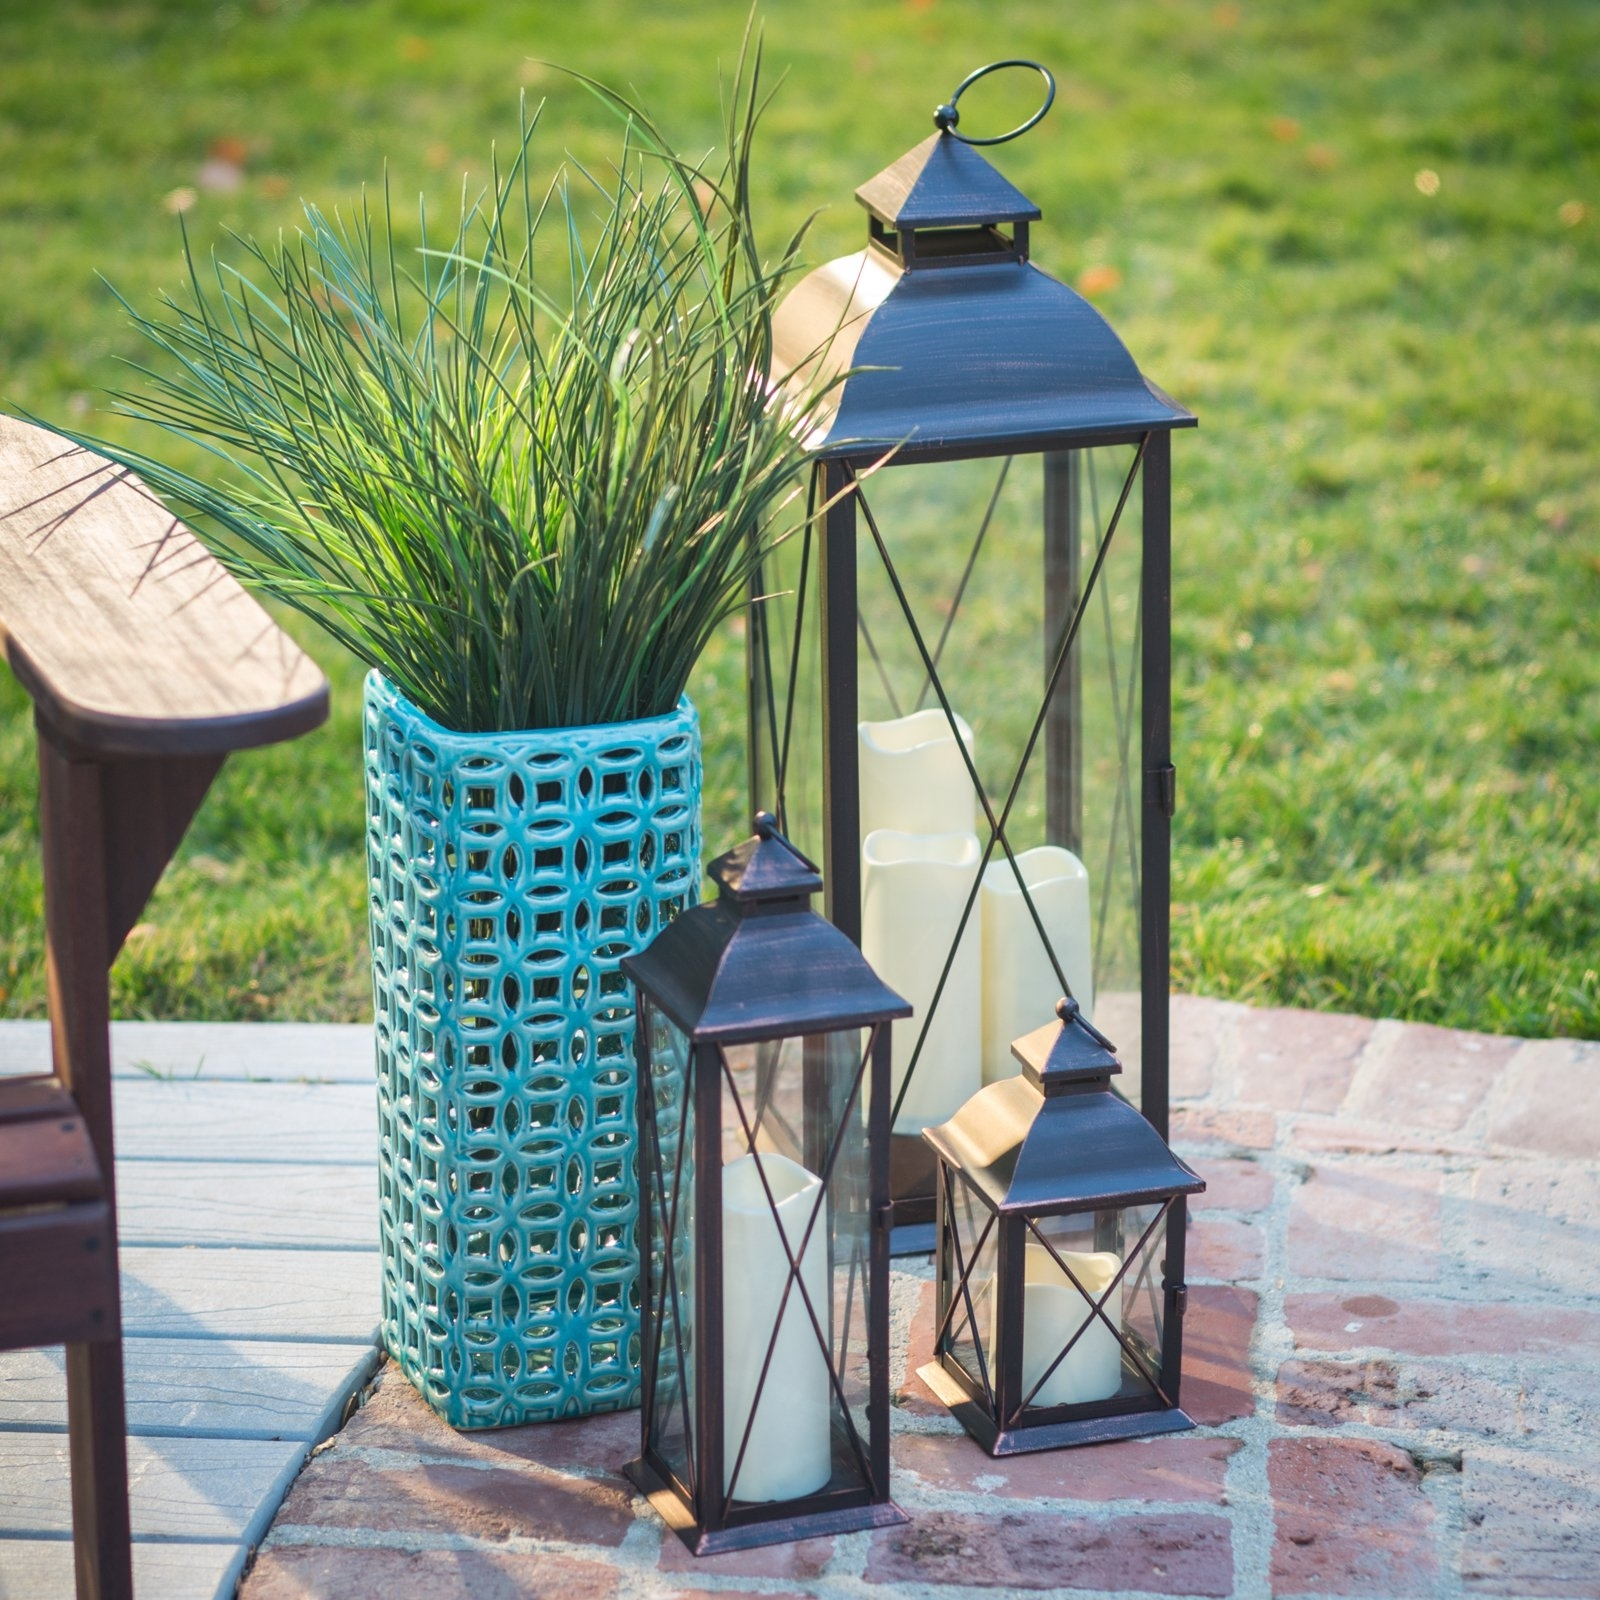 Set Of 3 Outdoor Lanterns Pertaining To Recent Smart Design Metal Lanterns With Led Candles – Set Of 3 – Walmart (View 13 of 20)